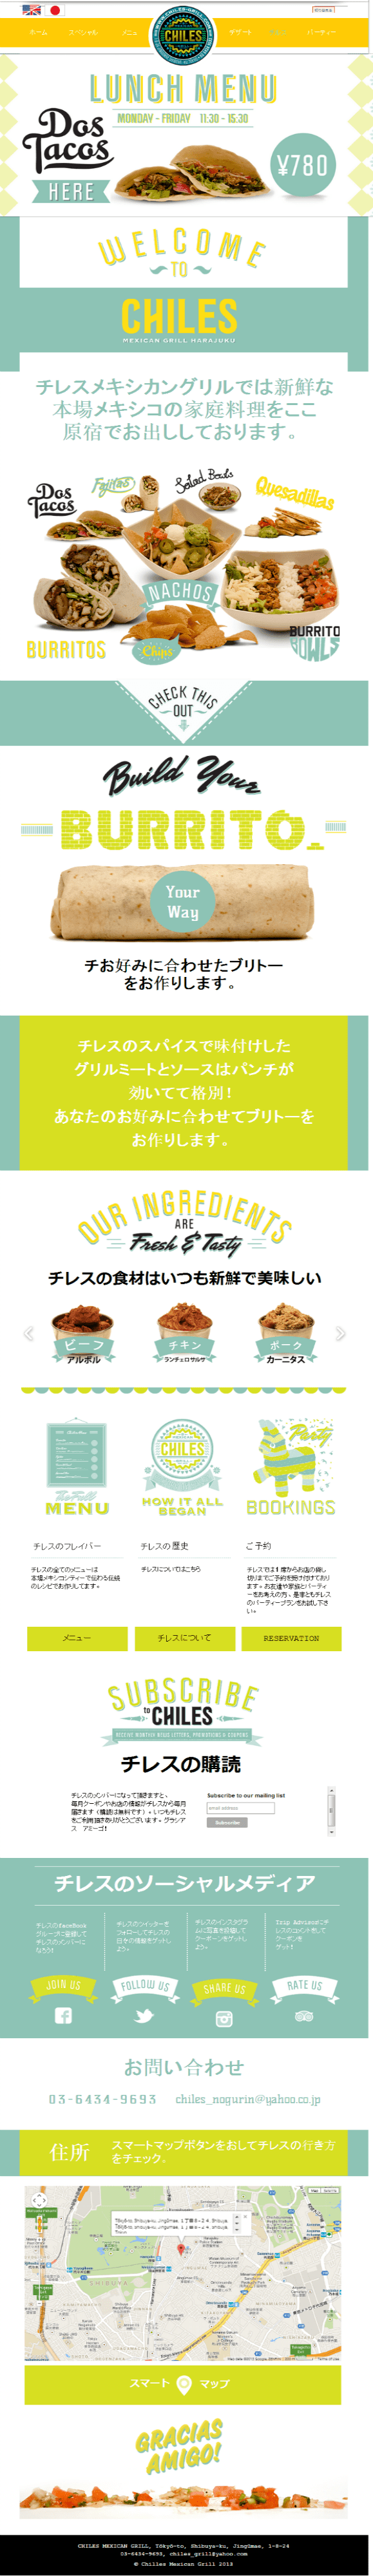 Chiles Mexican Grill のWixサイト